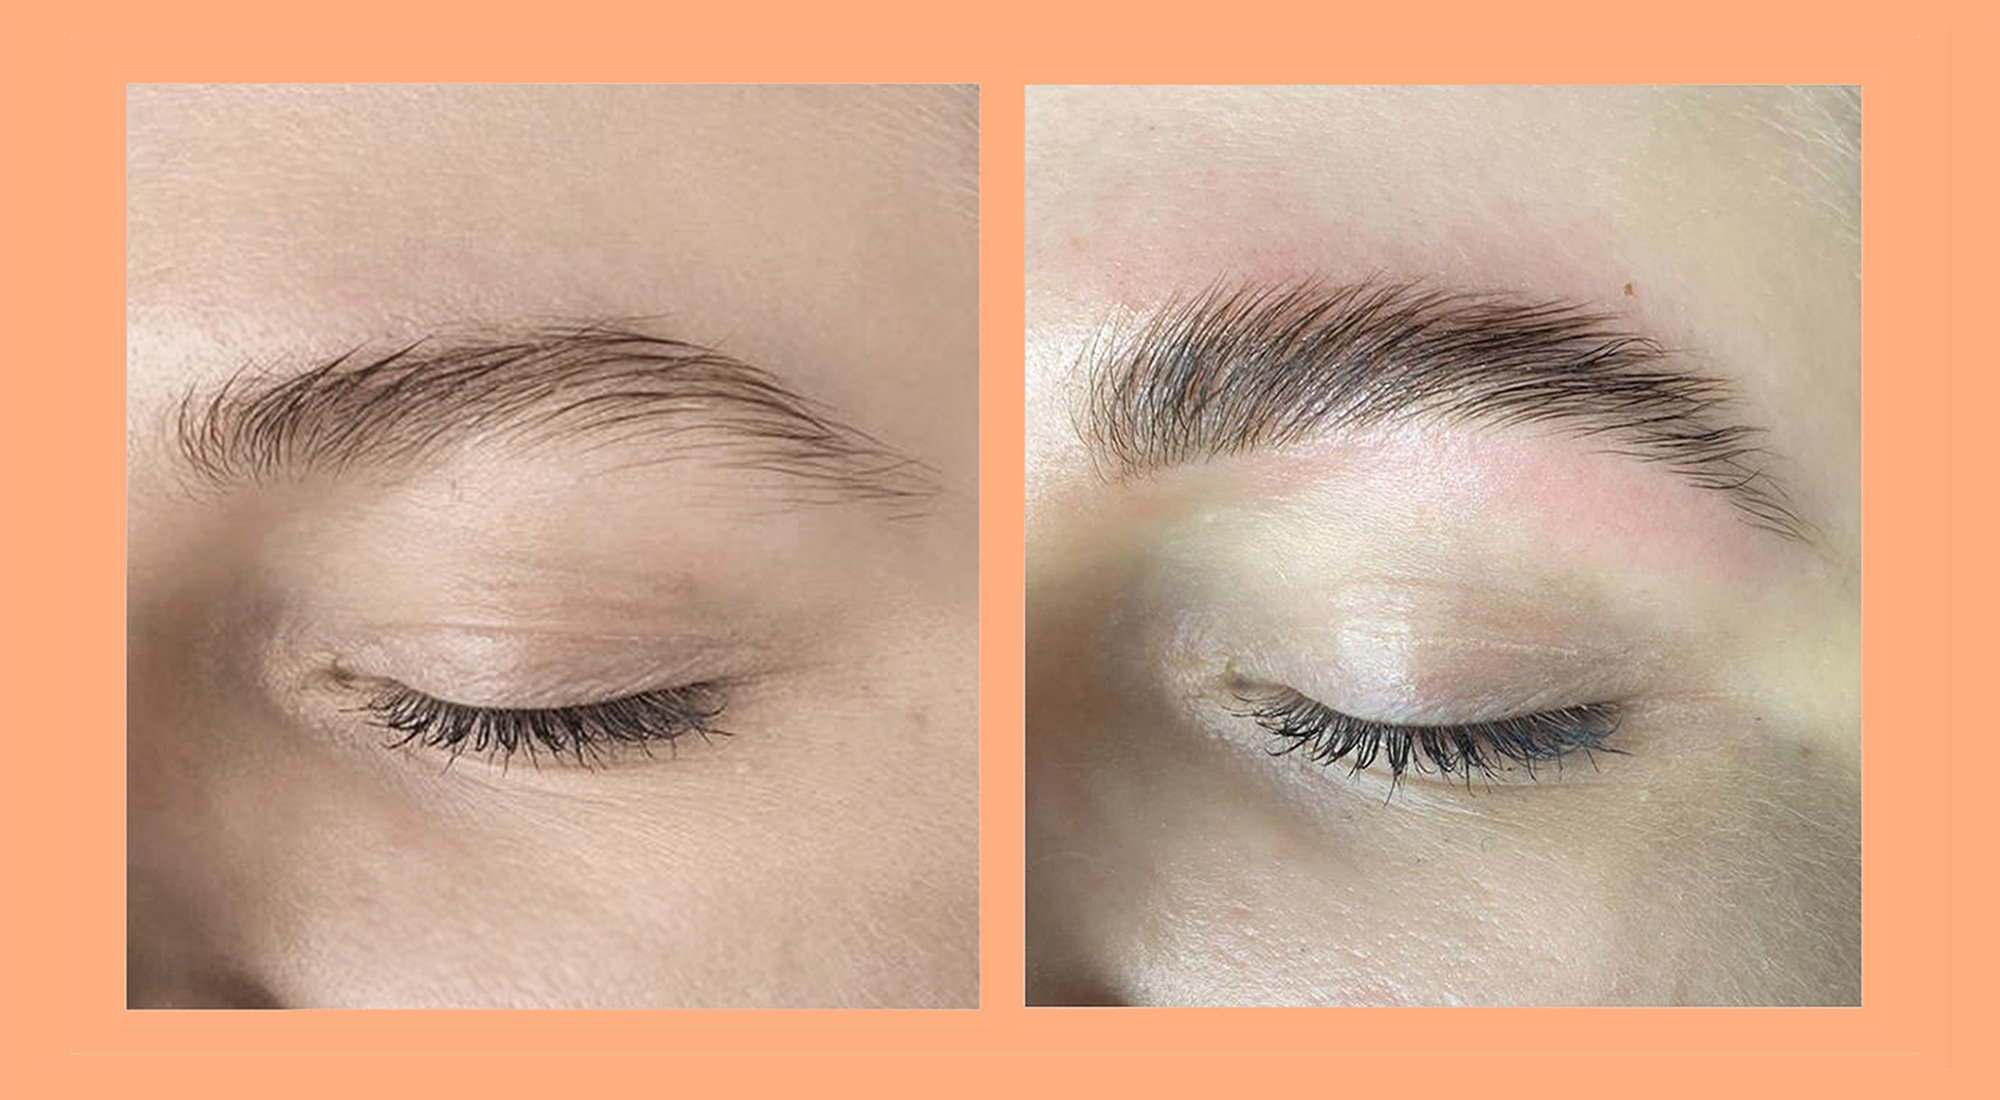 Brow lamination – what is it, and how does it work?